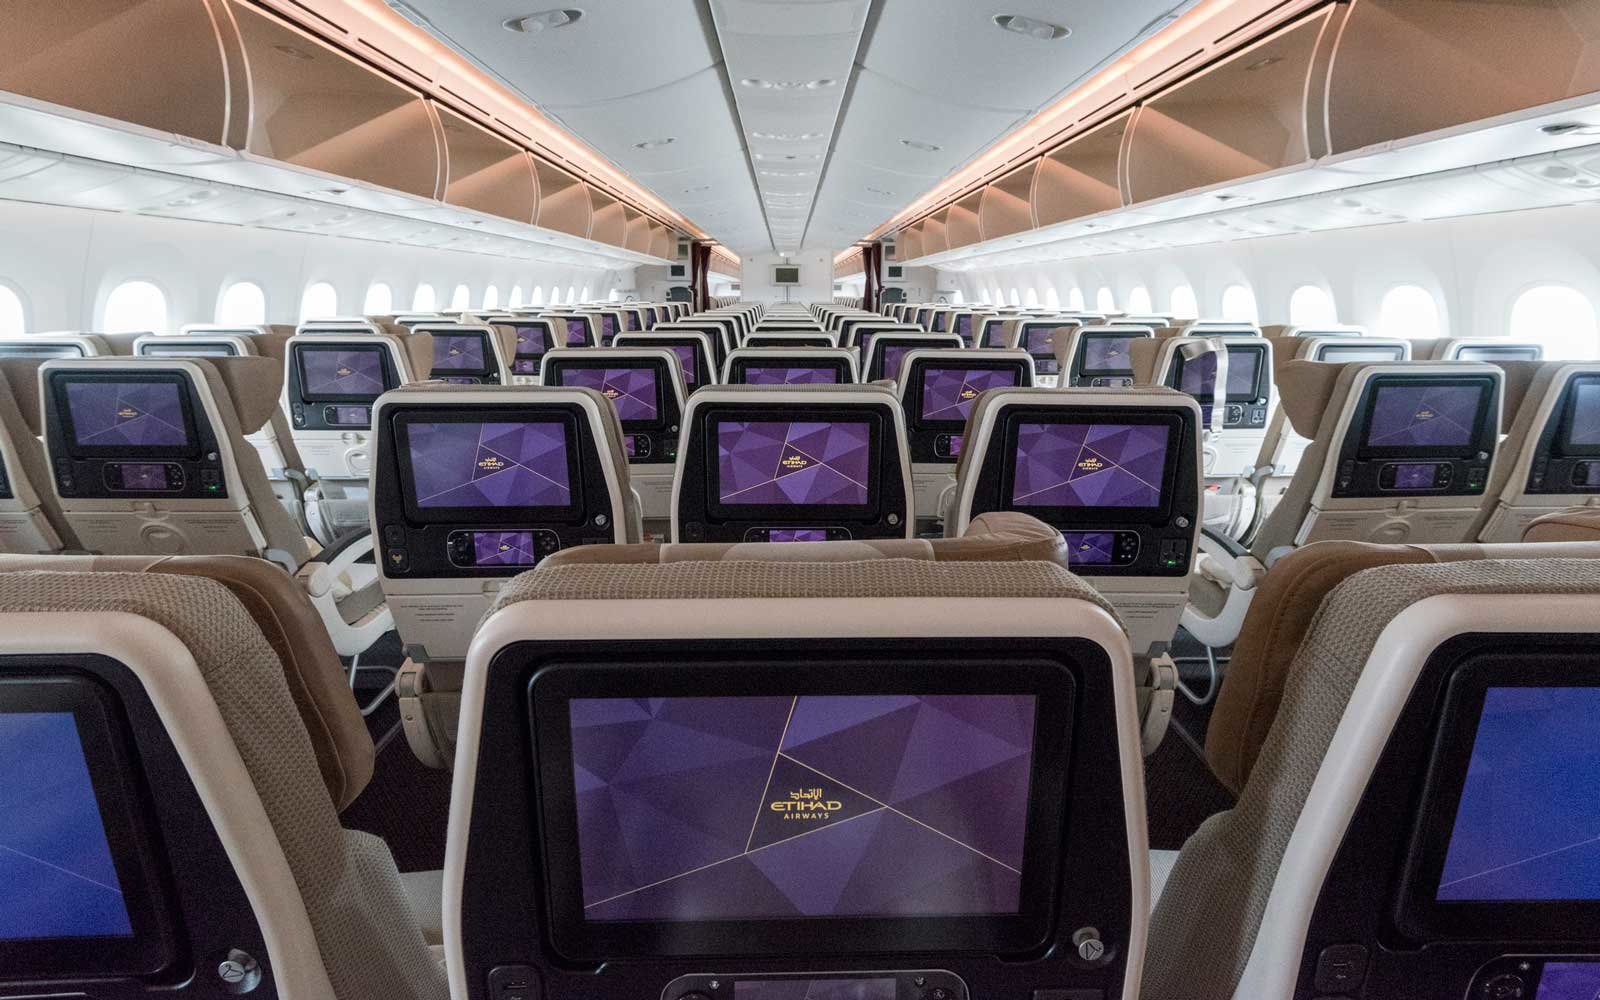 Etihad Airways Boeing 787-9 aircraft interior